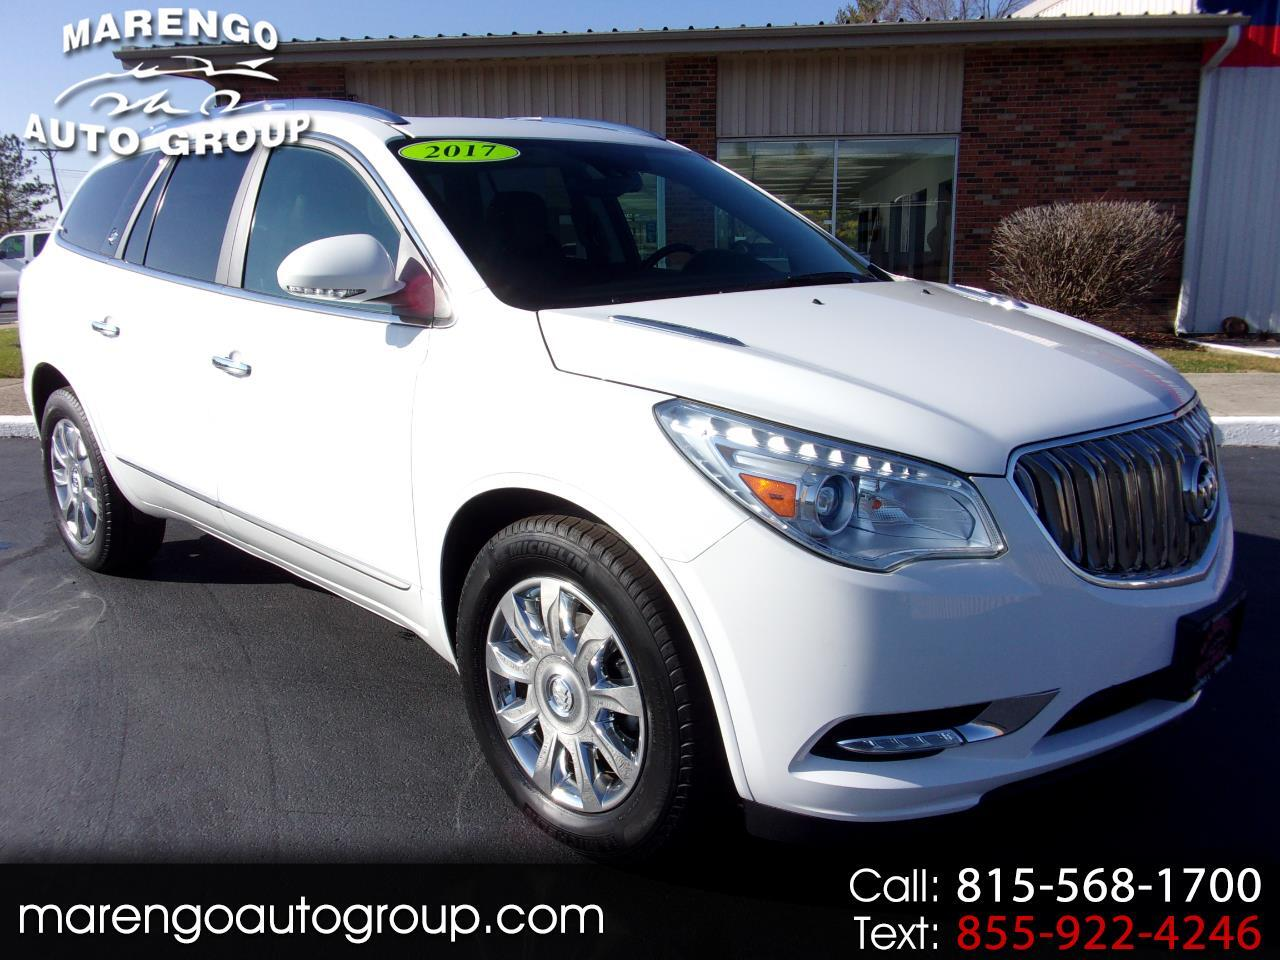 used 2017 Buick Enclave car, priced at $28,996